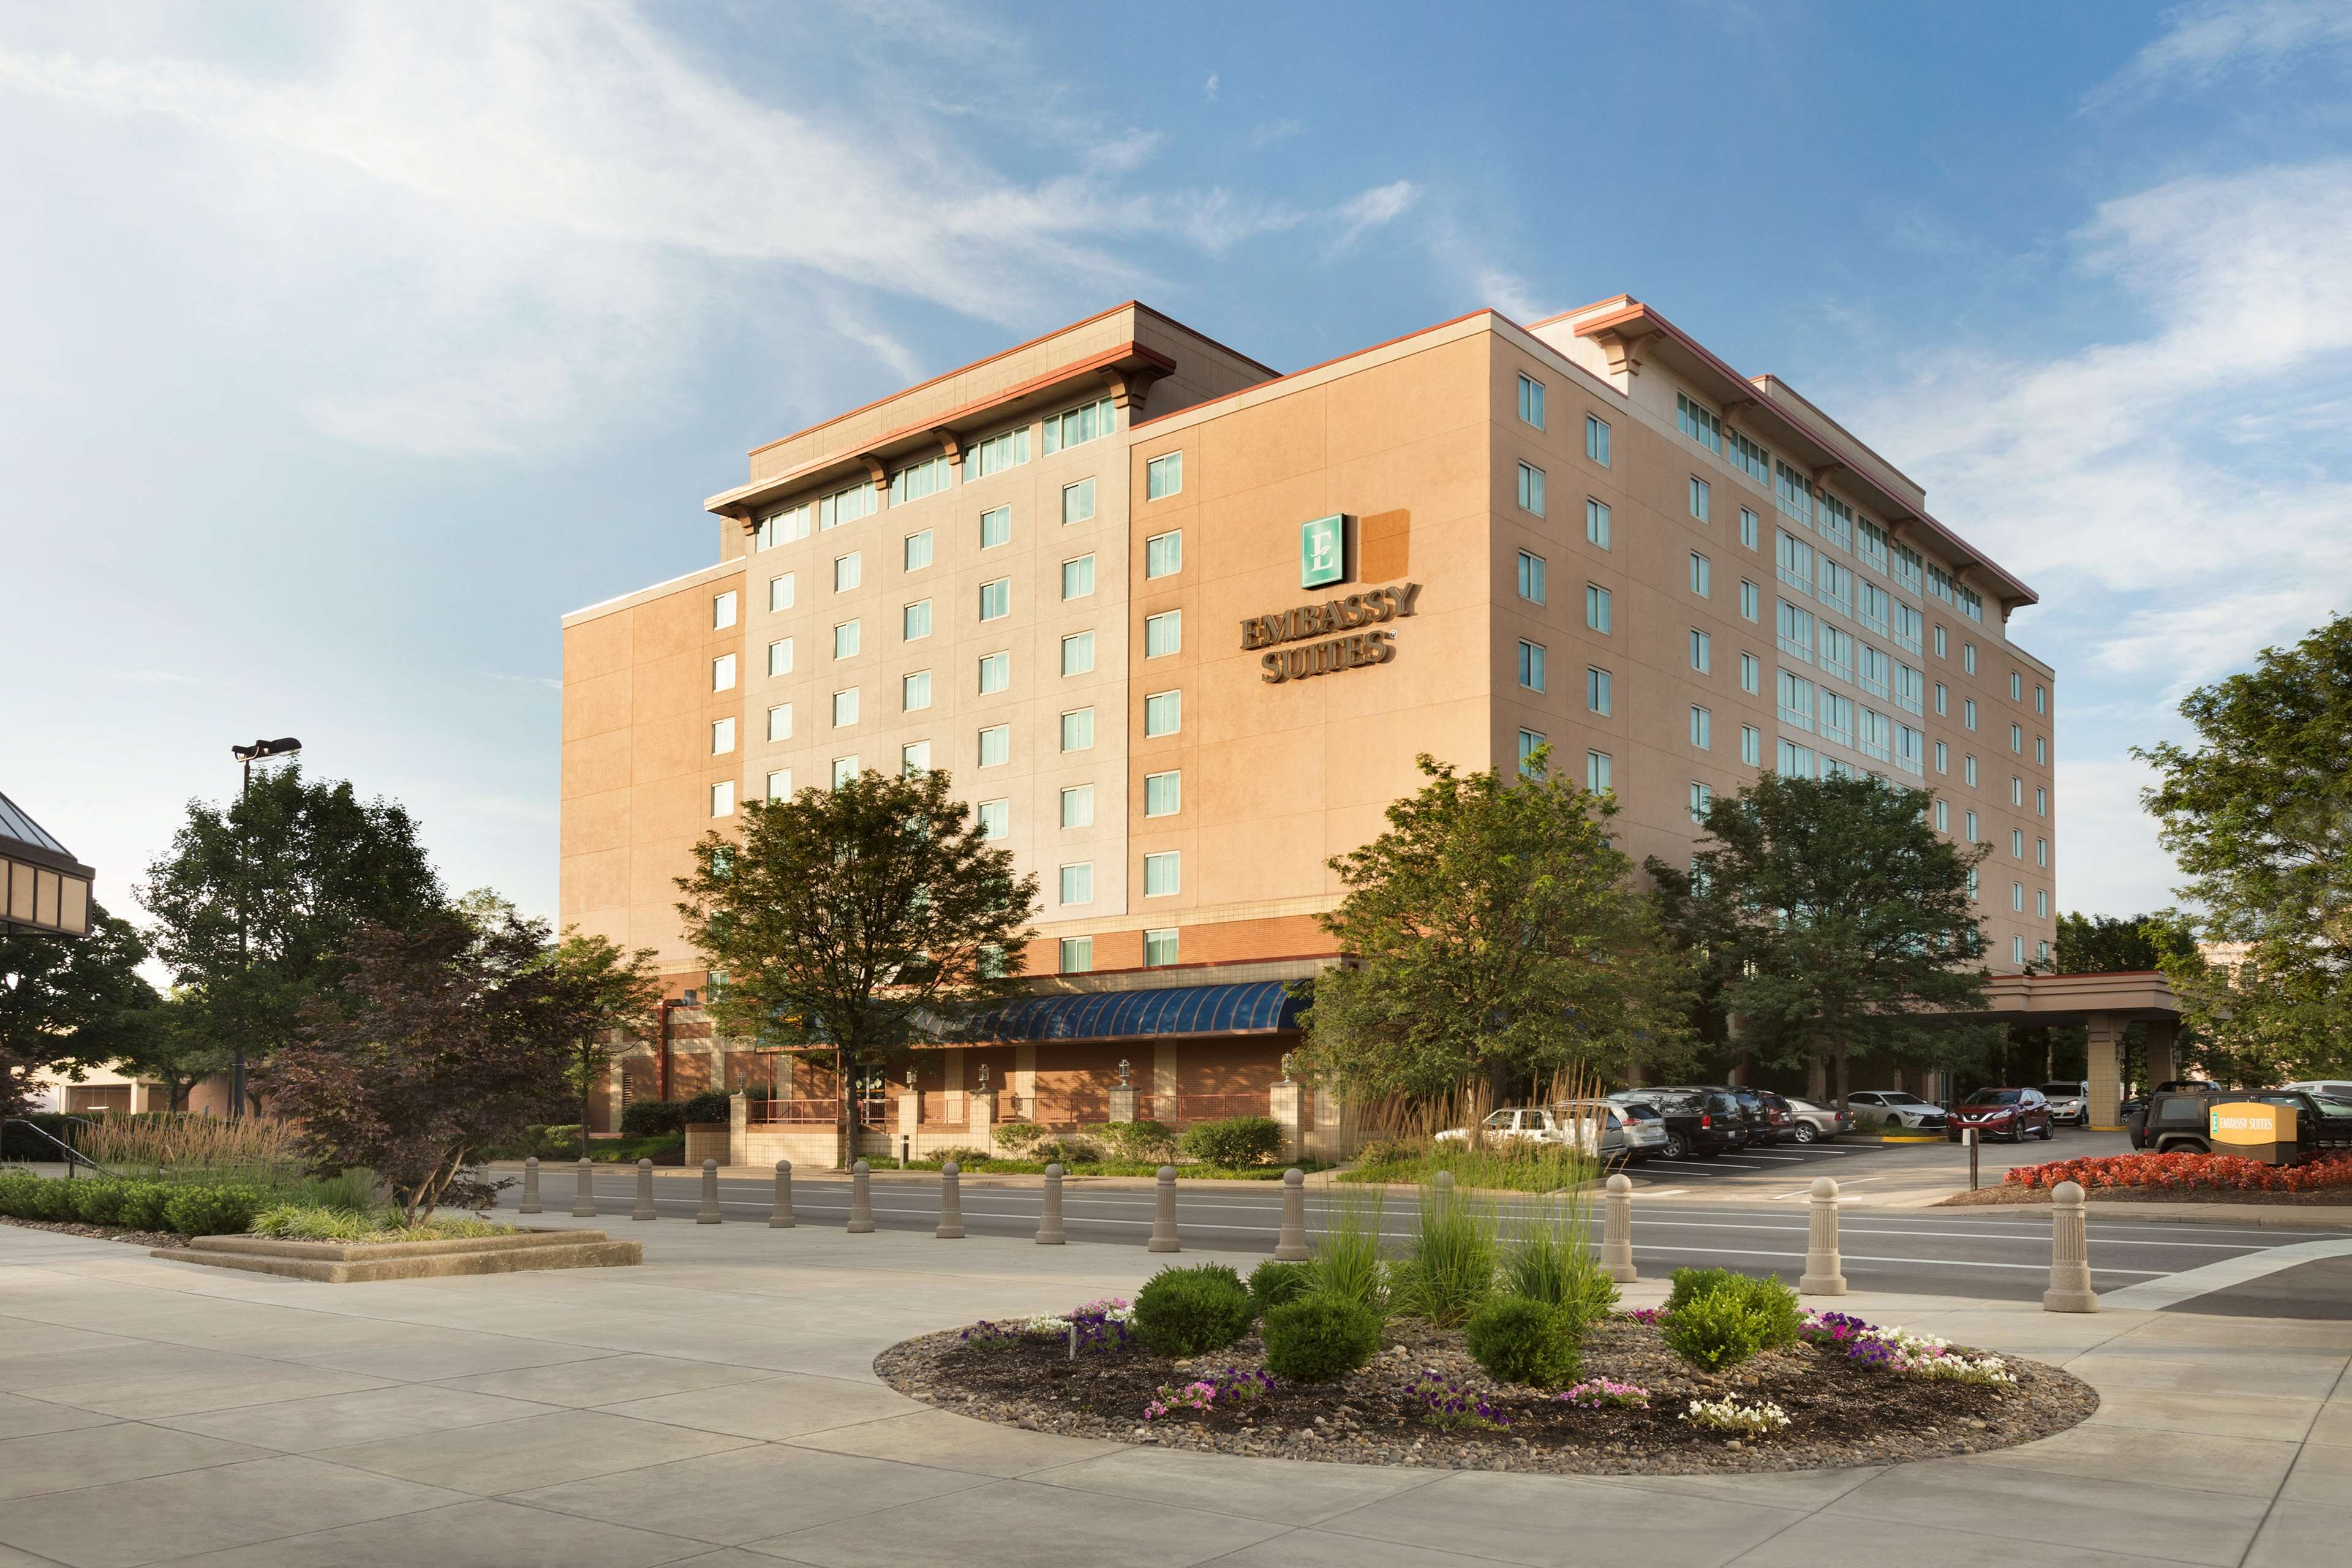 Embassy Suites by Hilton Charleston image 1